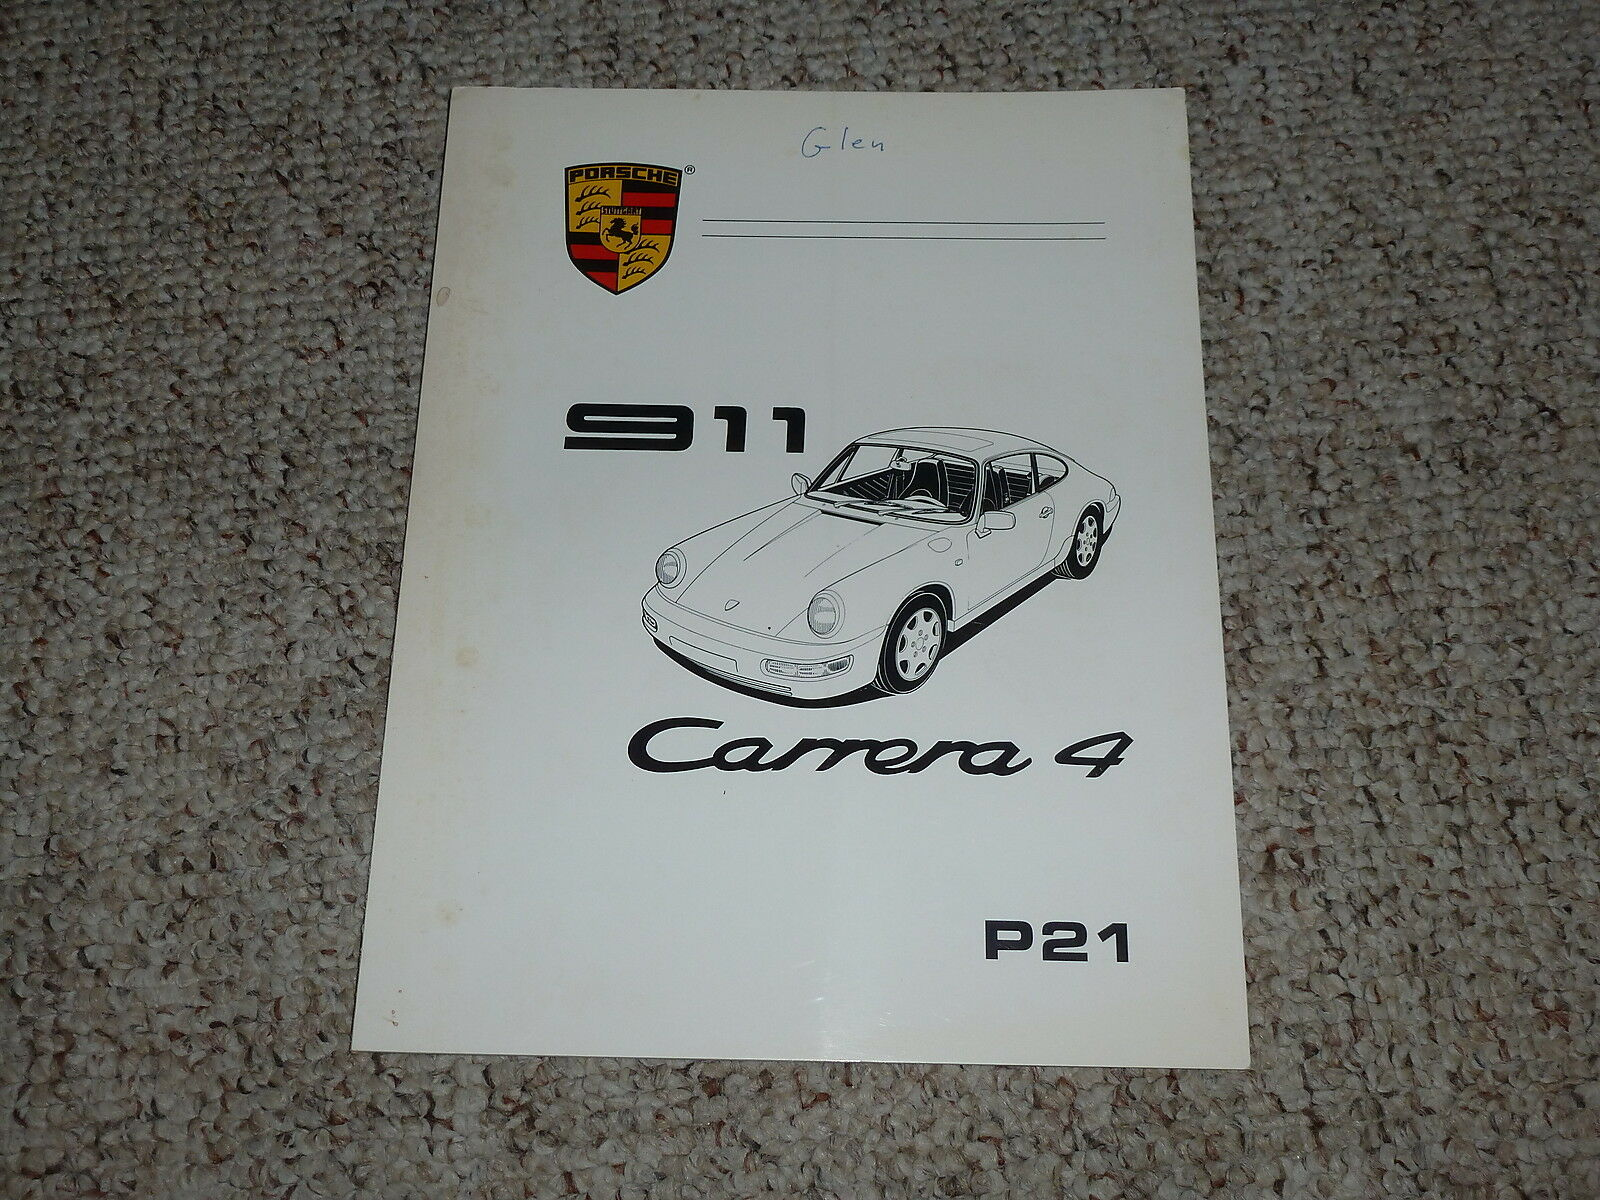 1989 Porsche 911 Carrera 4 Fuel & Ignition Repair Service Shop Workshop  Manual 1 of 1Only 1 available ...